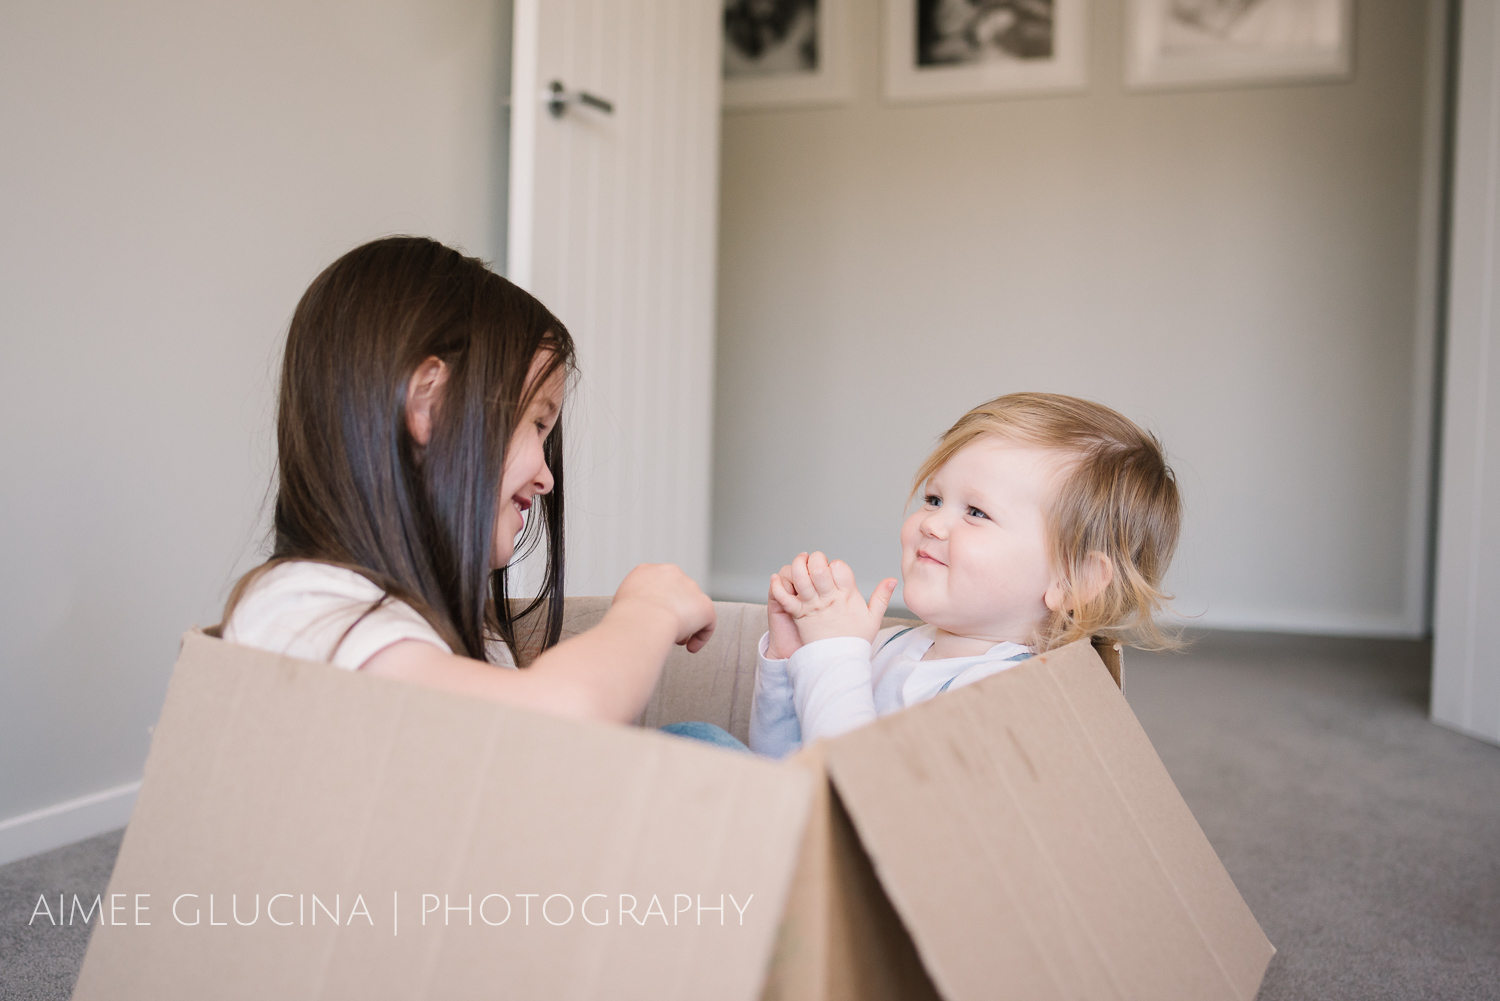 O'Keefe Lifestyle Newborn Session by Aimee Glucina Photography-18.jpg